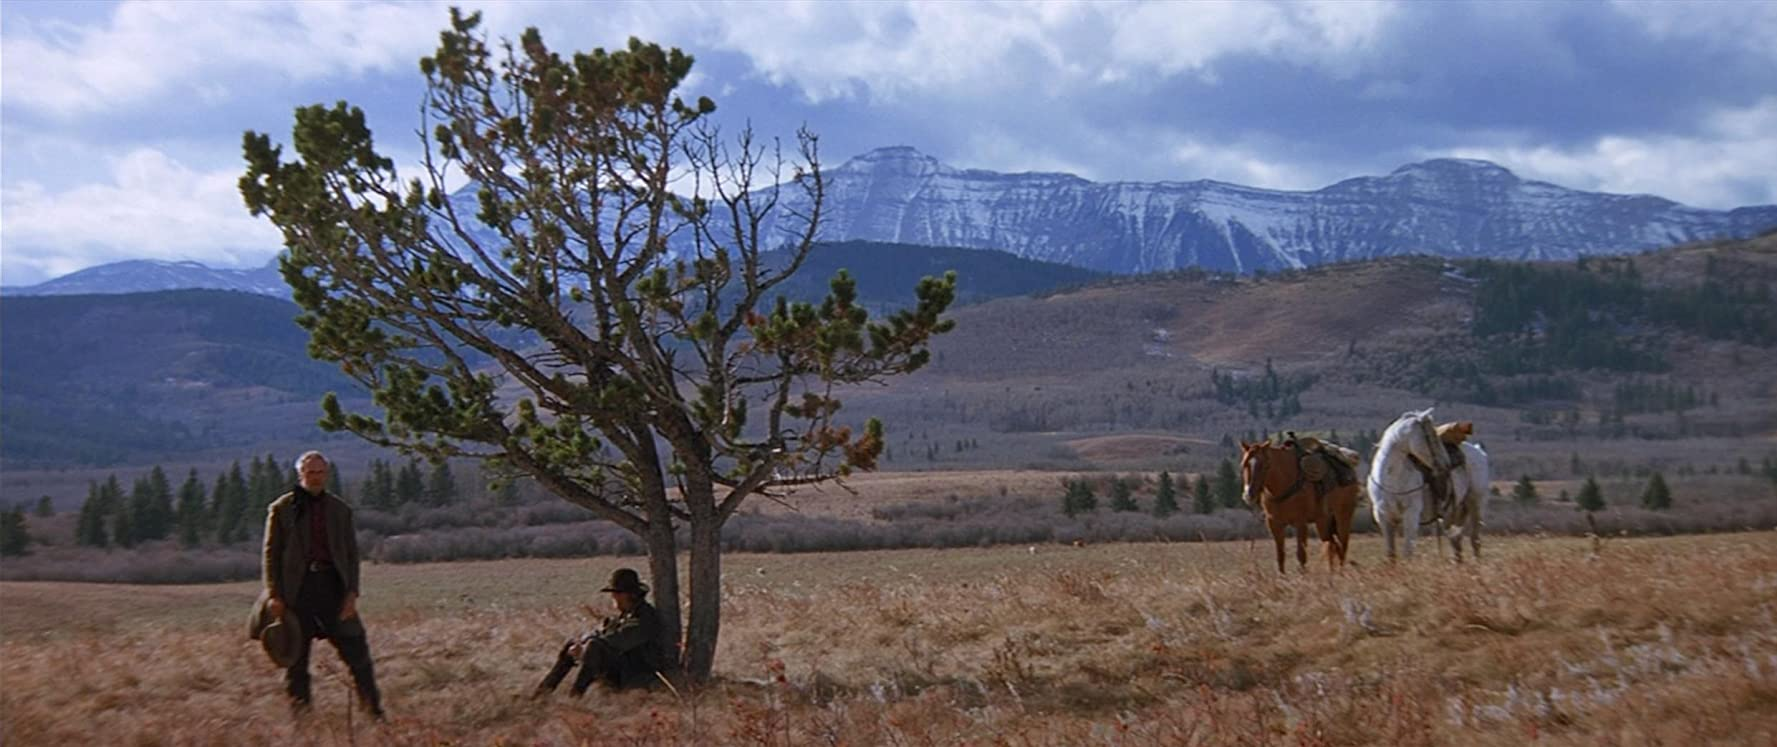 Clint Eastwood and Jaimz Woolvett in Unforgiven (1992)